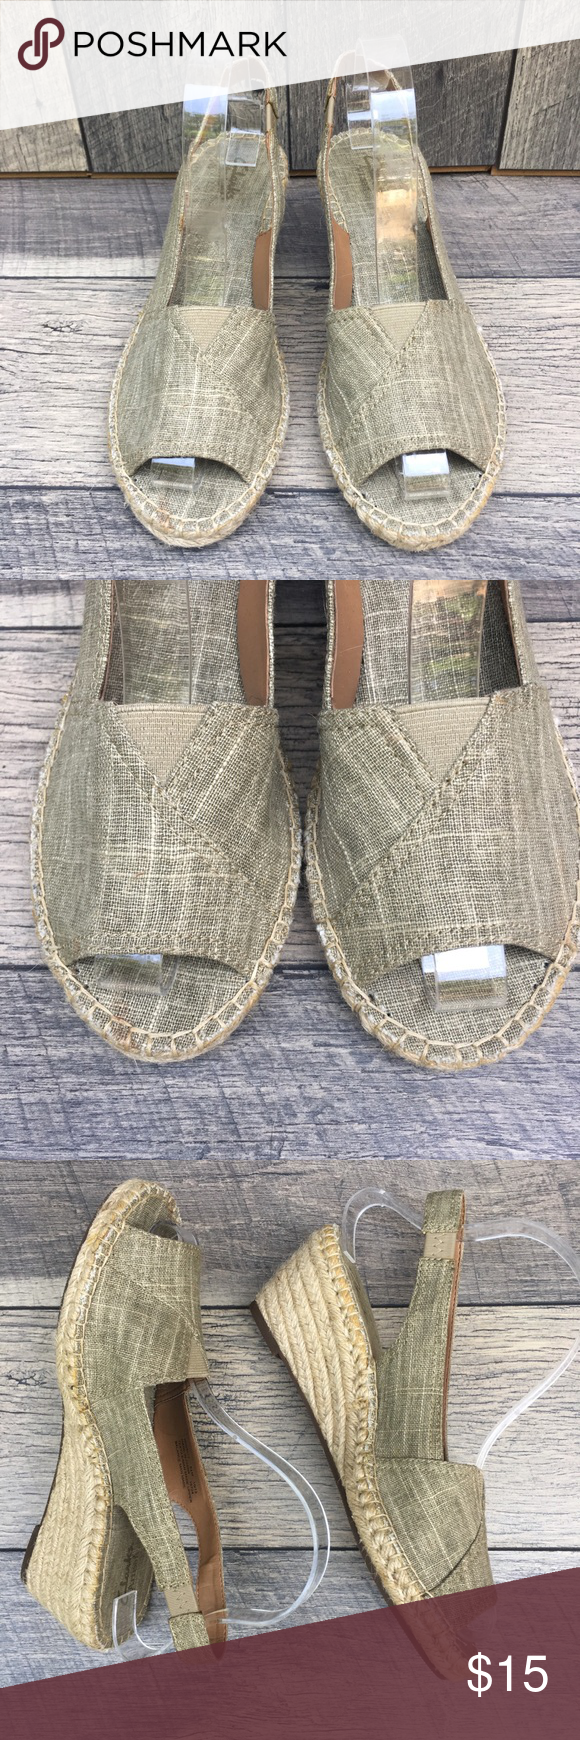 Clark's Hemp Low Wedge Peep Toe Sandal Clarks Low wedge sandal is comfy and cute! Looks great with shorts or casual skirt * Clark's * Sz 8.5 * hemp & rope wedge Clarks Shoes Wedges #lowwedgesandals Clark's Hemp Low Wedge Peep Toe Sandal Clarks Low wedge sandal is comfy and cute! Looks great with shorts or casual skirt * Clark's * Sz 8.5 * hemp & rope wedge Clarks Shoes Wedges #lowwedgesandals Clark's Hemp Low Wedge Peep Toe Sandal Clarks Low wedge sandal is comfy and cute! Looks great #lowwedgesandals